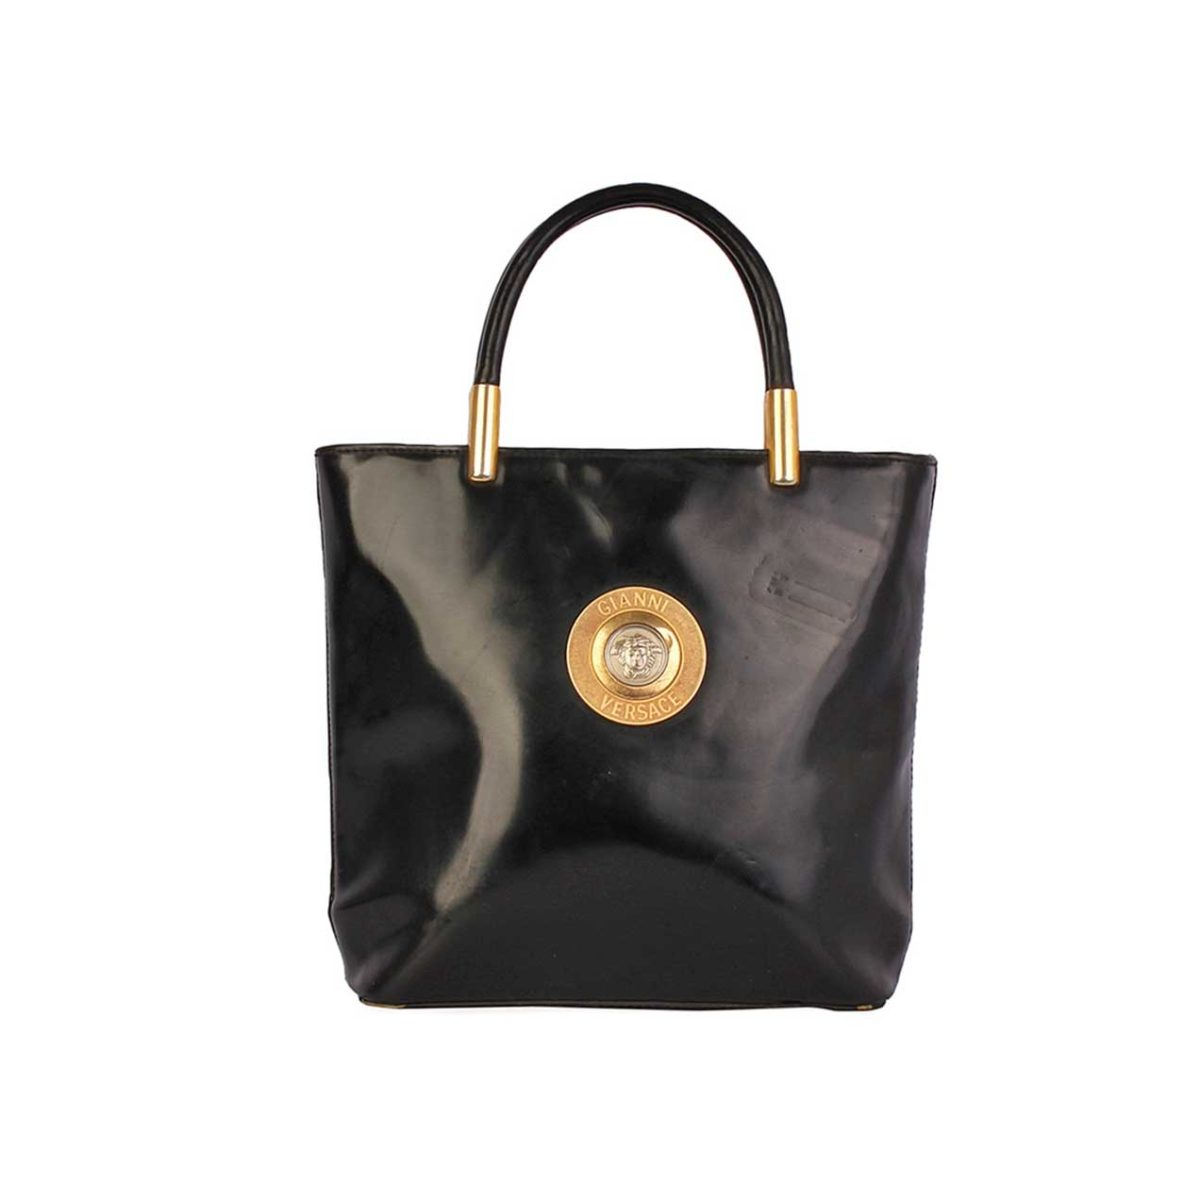 Gianni Versace Vintage Leather Top Handle Medusa Bag Black 876 00 511 Loading